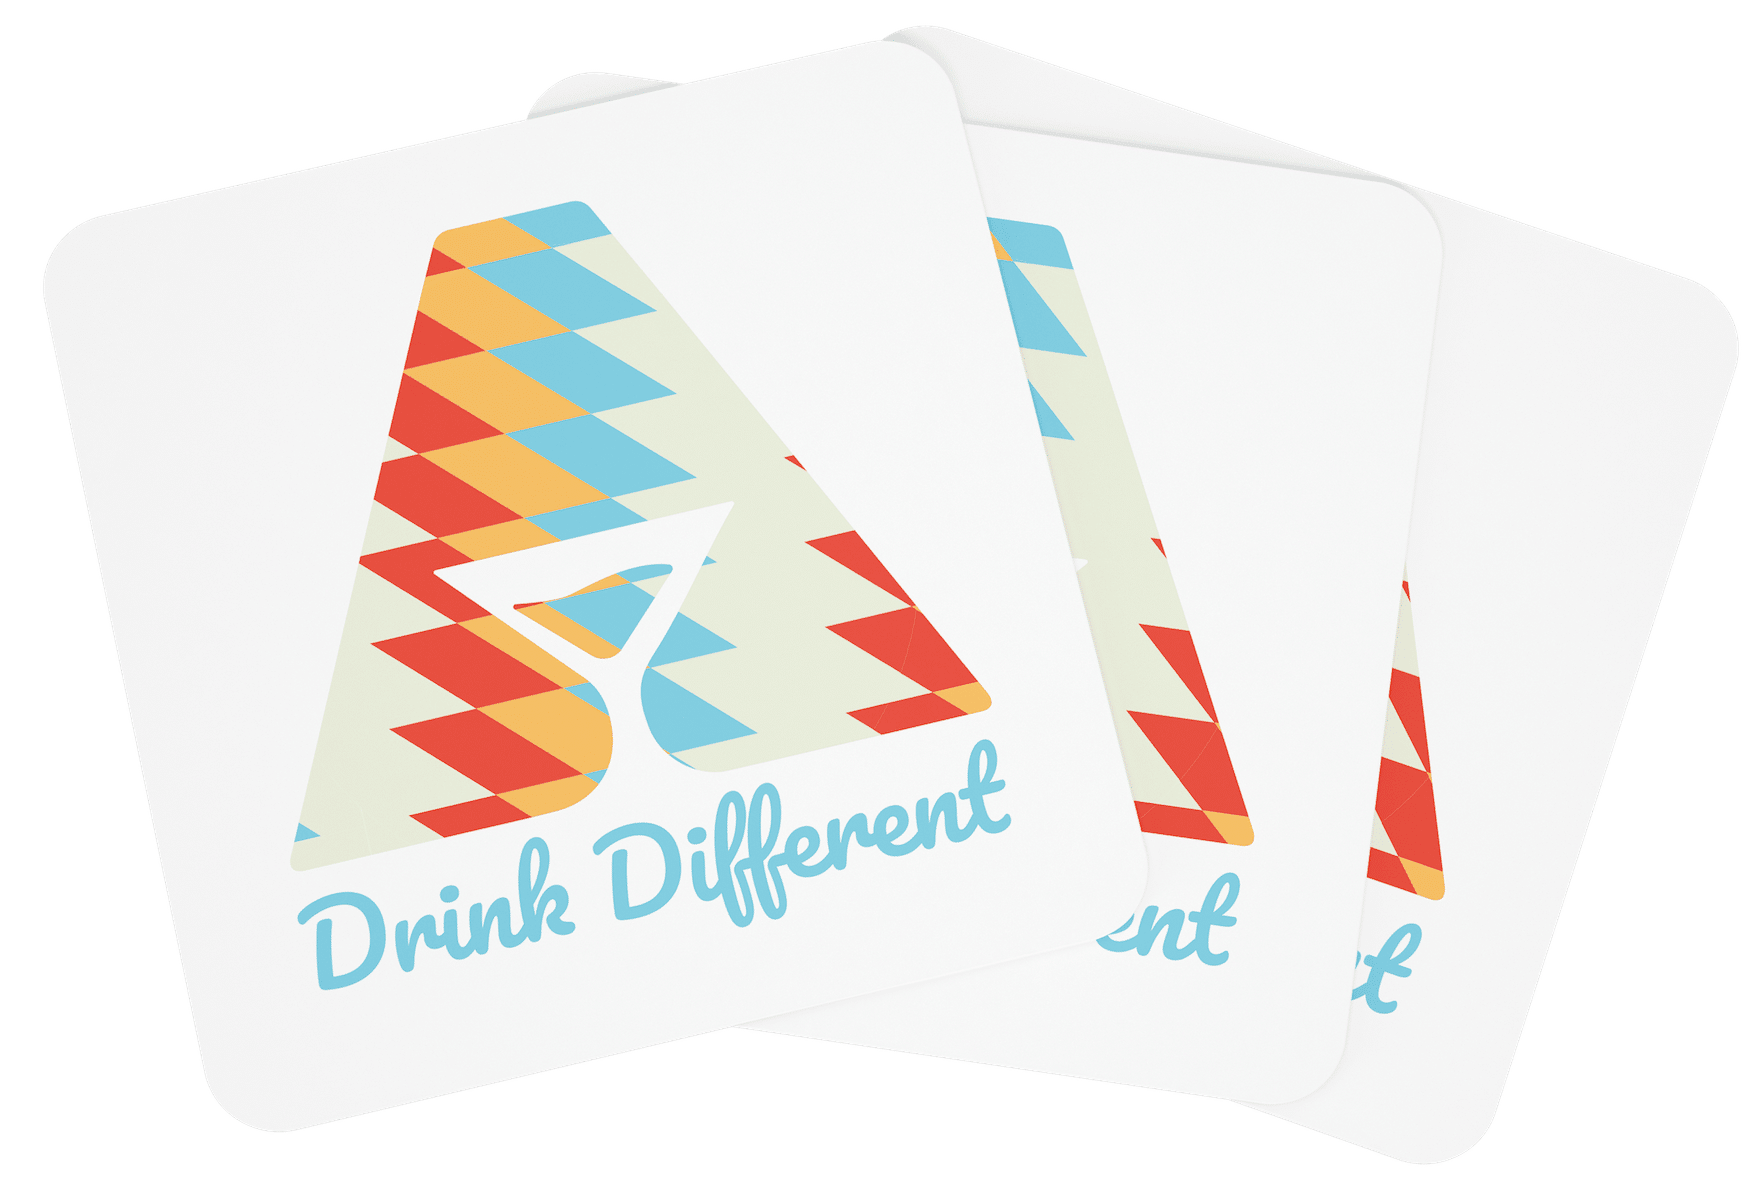 For All Drinks Coaster Drink Different